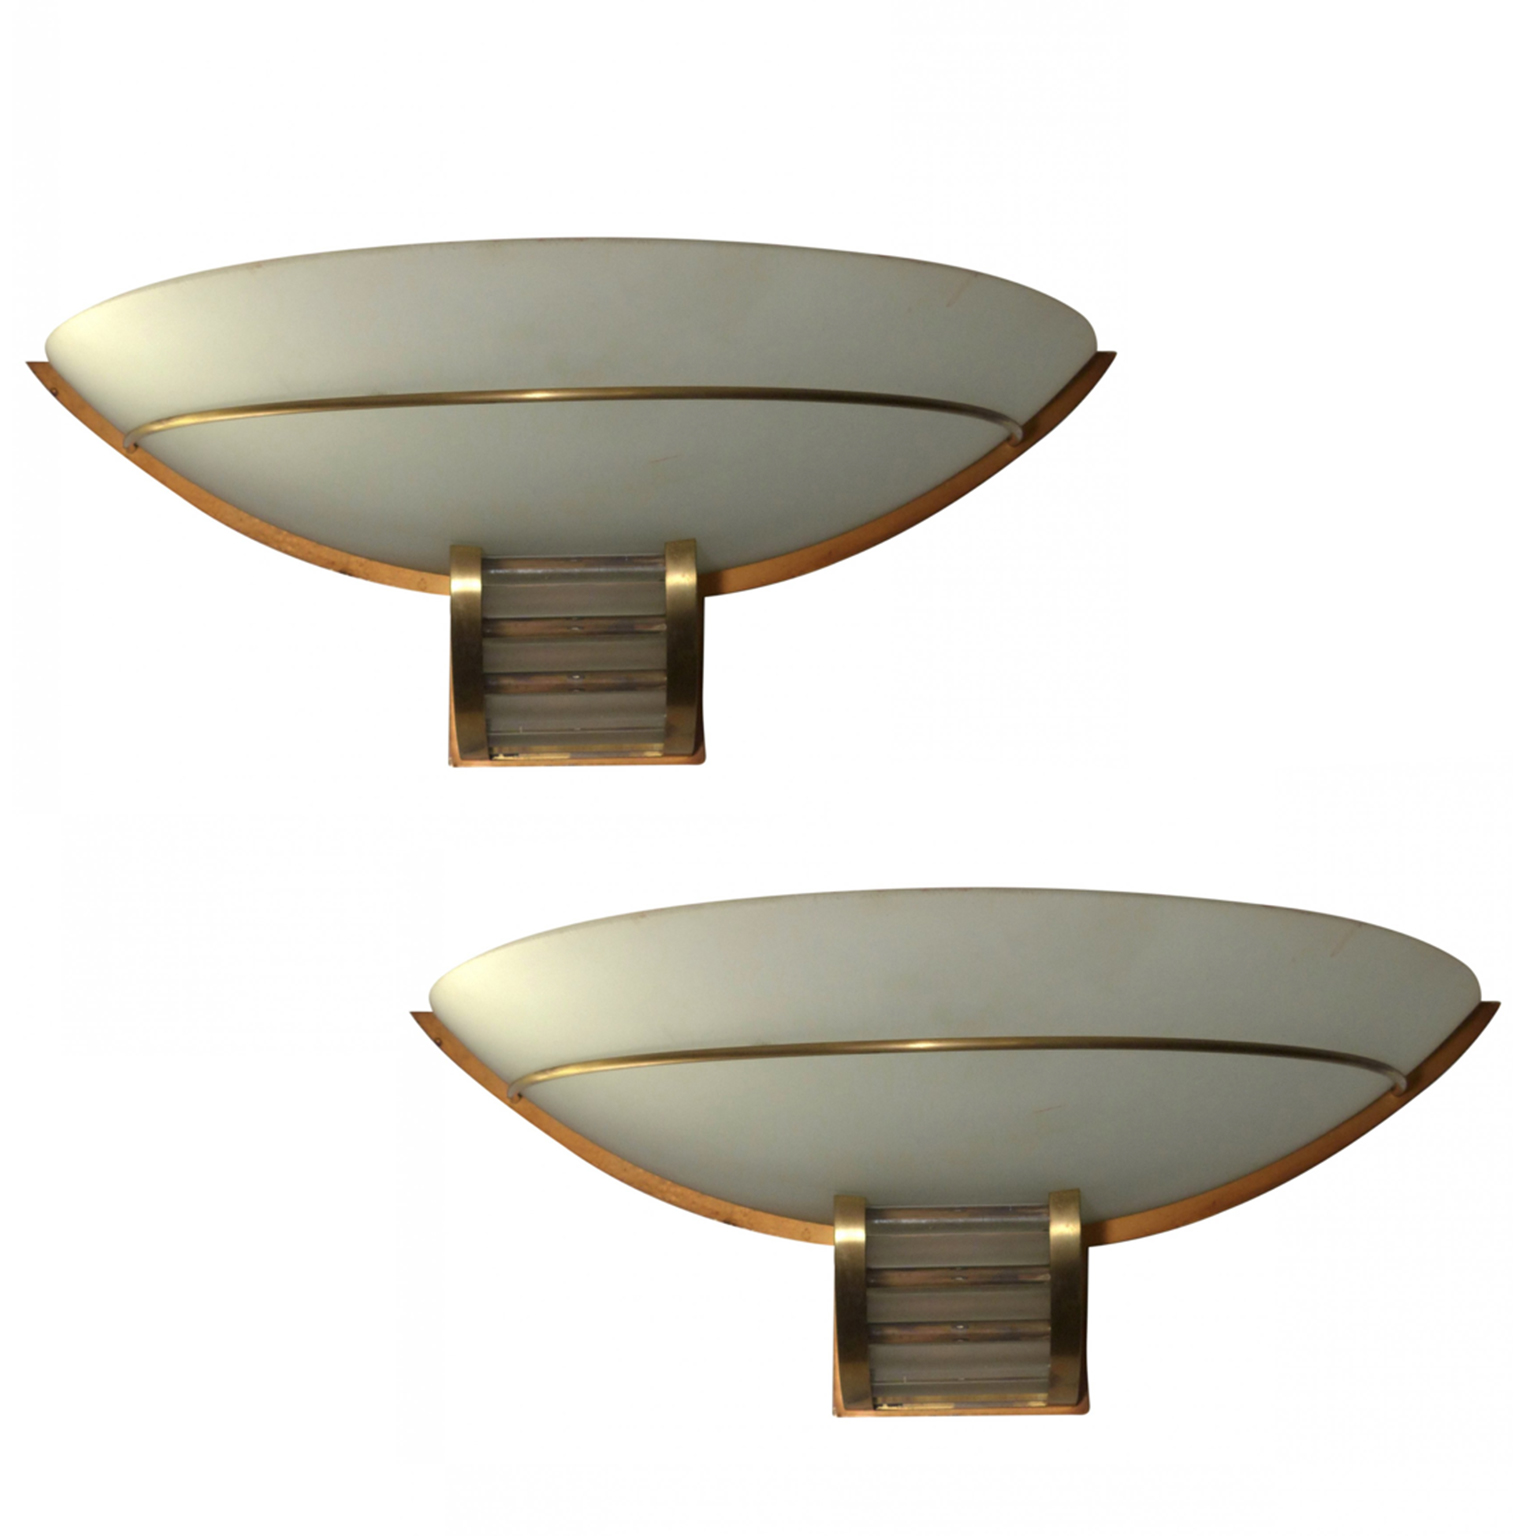 Art Deco Sconces in large bowl format, with brass hardware.